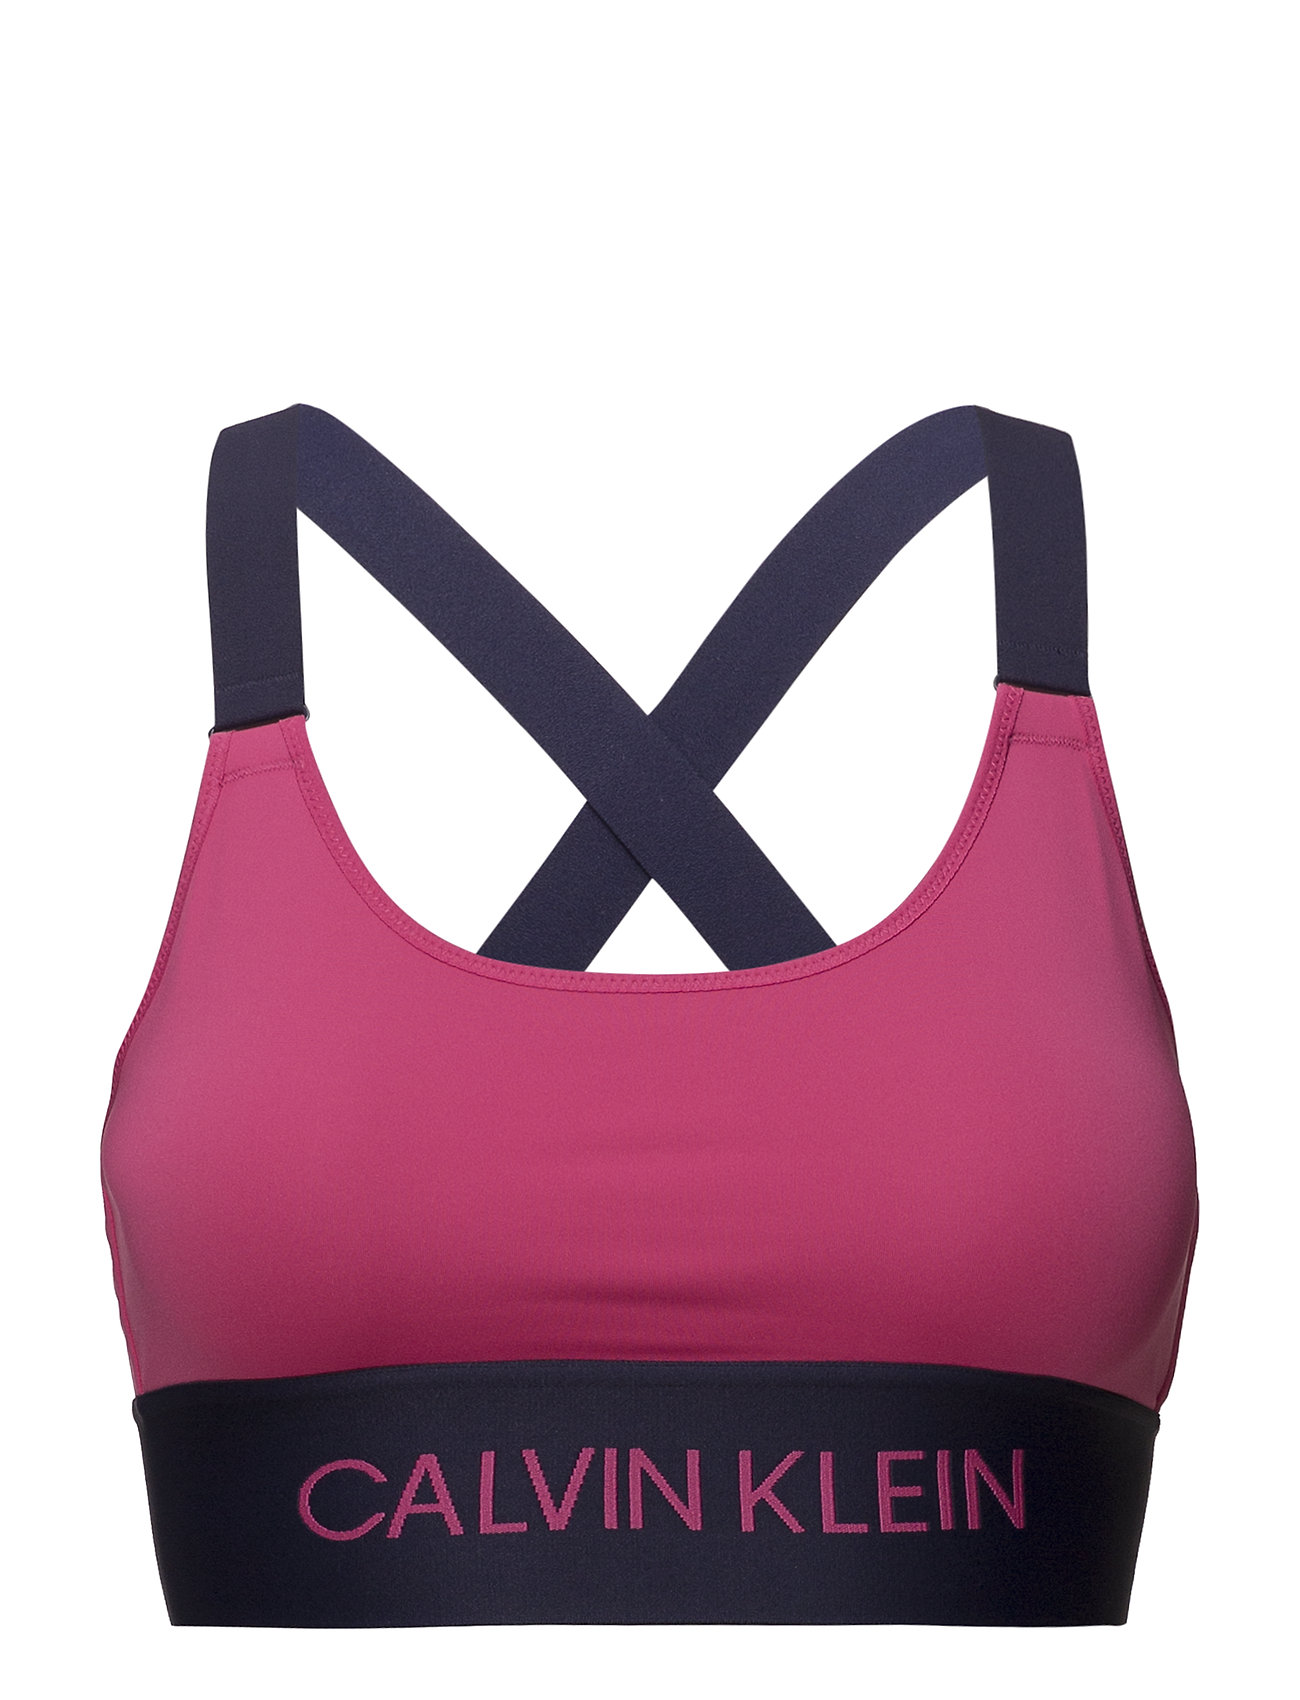 c65b8708bb6d6 Cross Back Sports Bra (Pink Yarrow) (38.94 €) - Calvin Klein ...